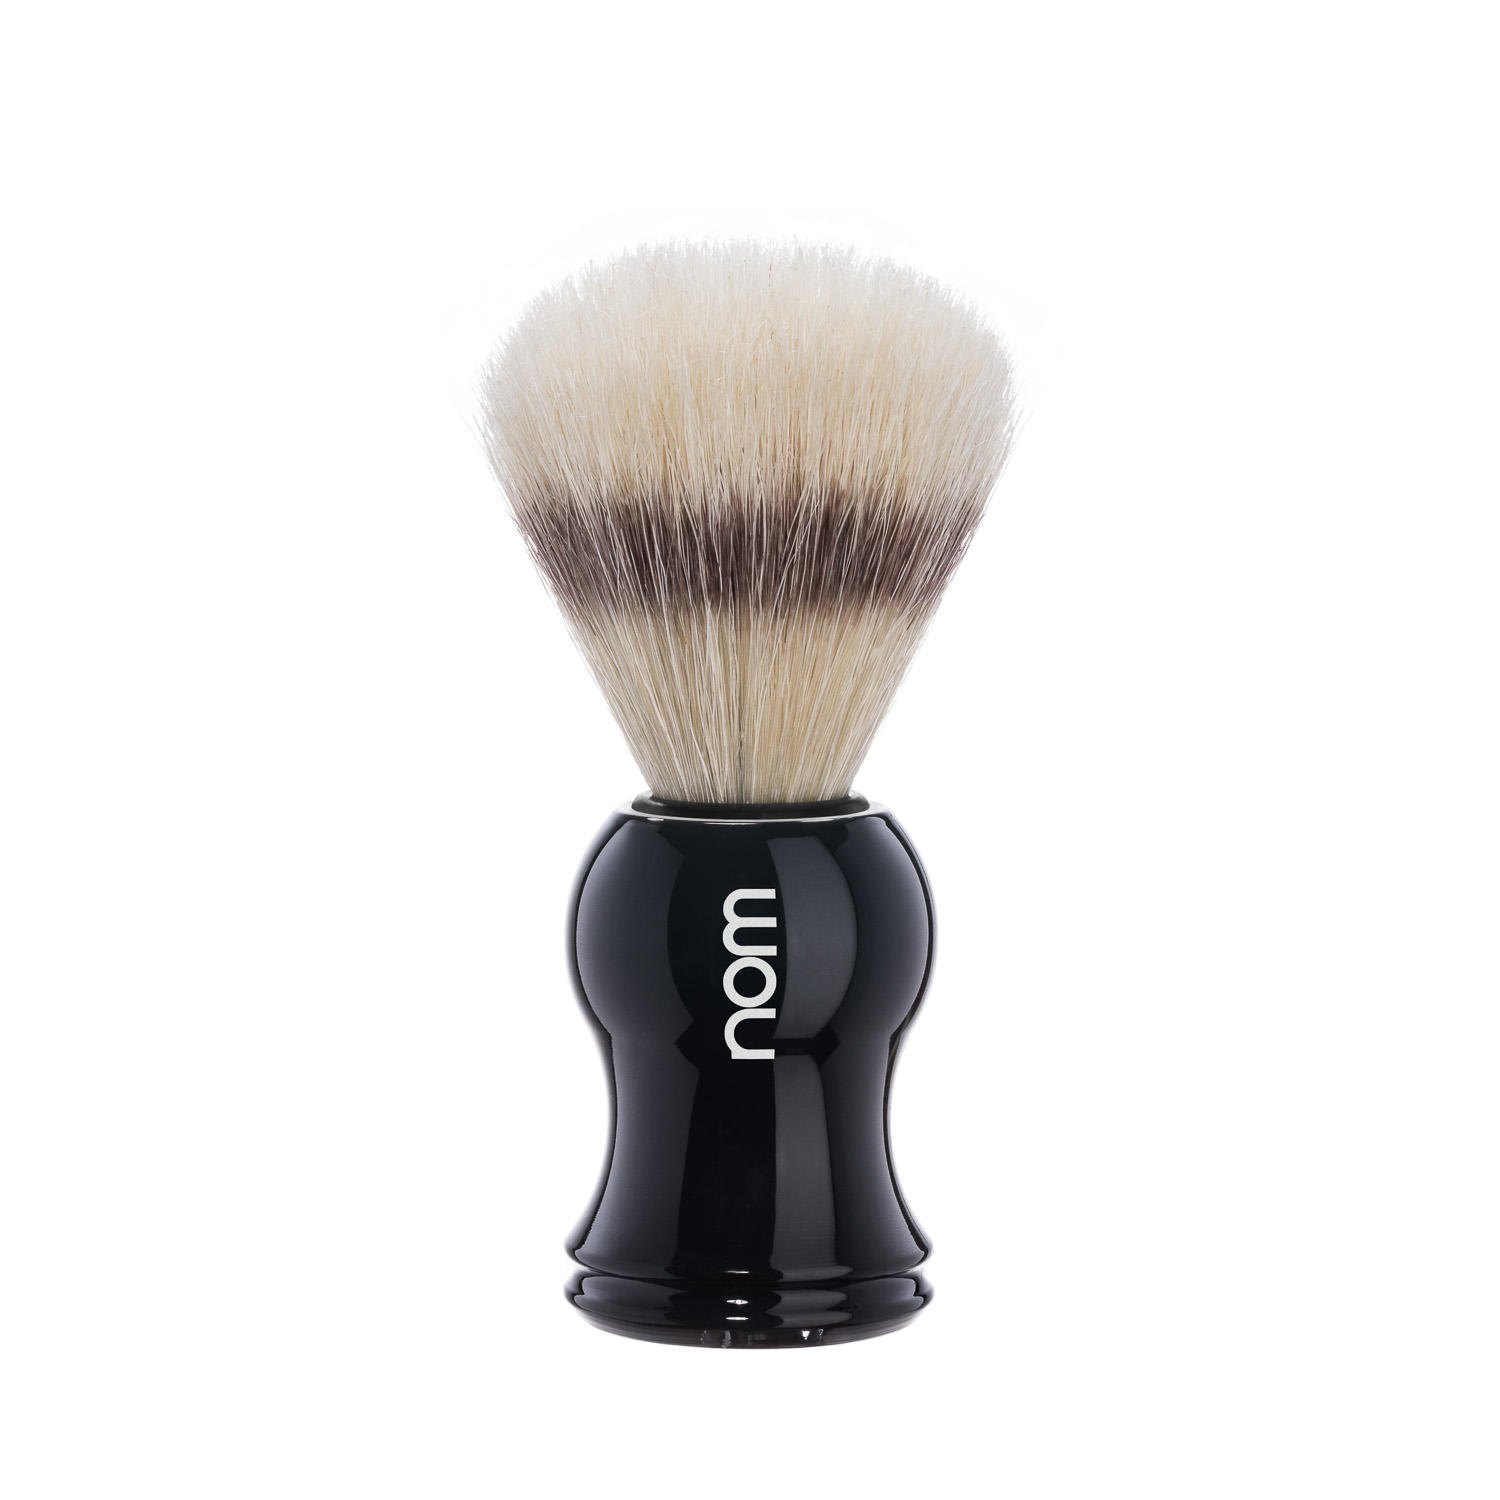 GUSTAV41BL nom, GUSTAV Black, Pure Bristle Shaving Brush